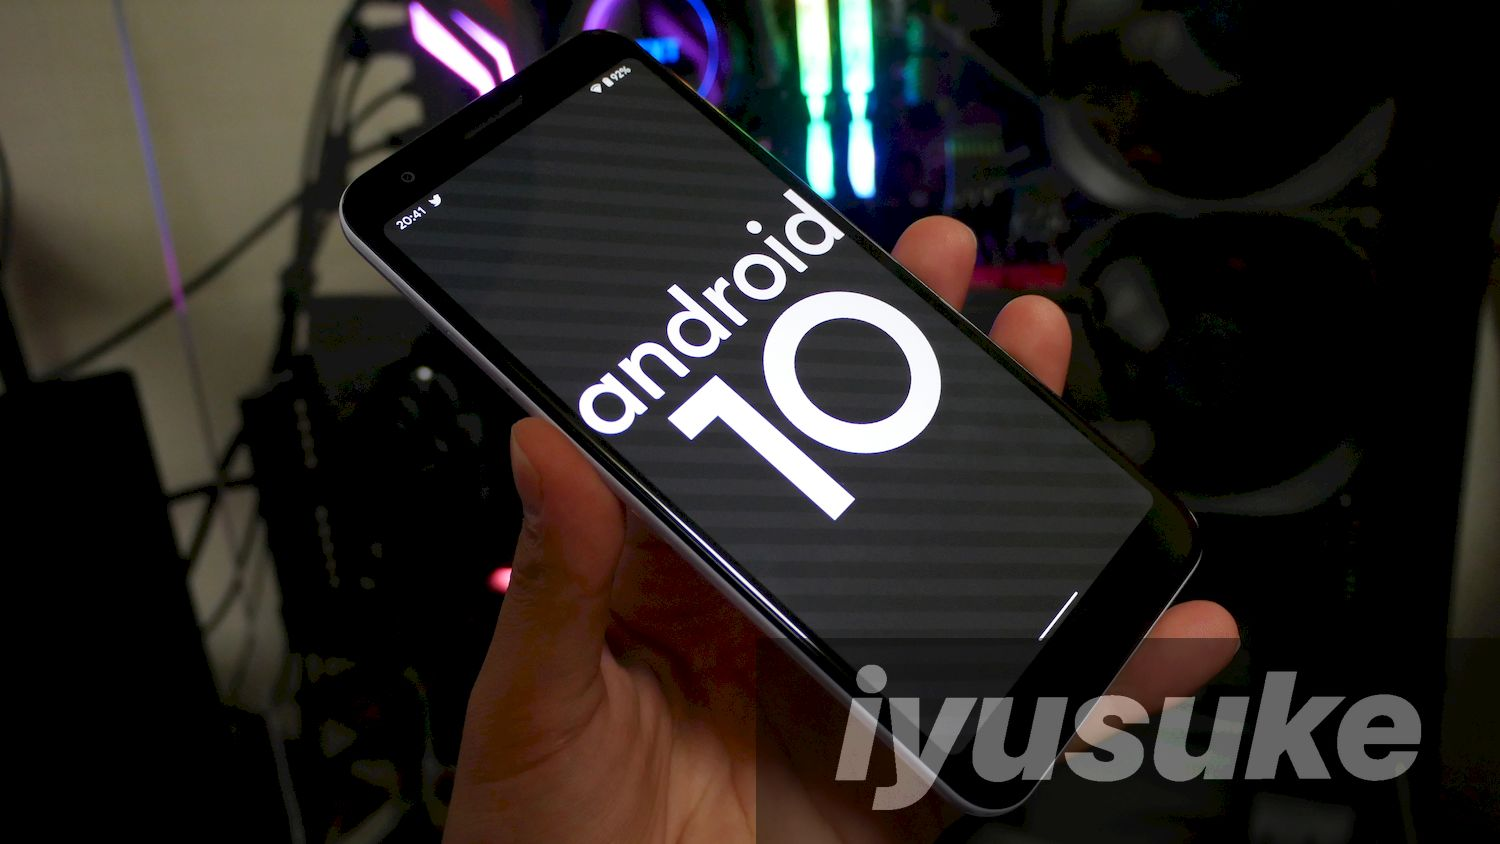 Android 10 Pixel 3a